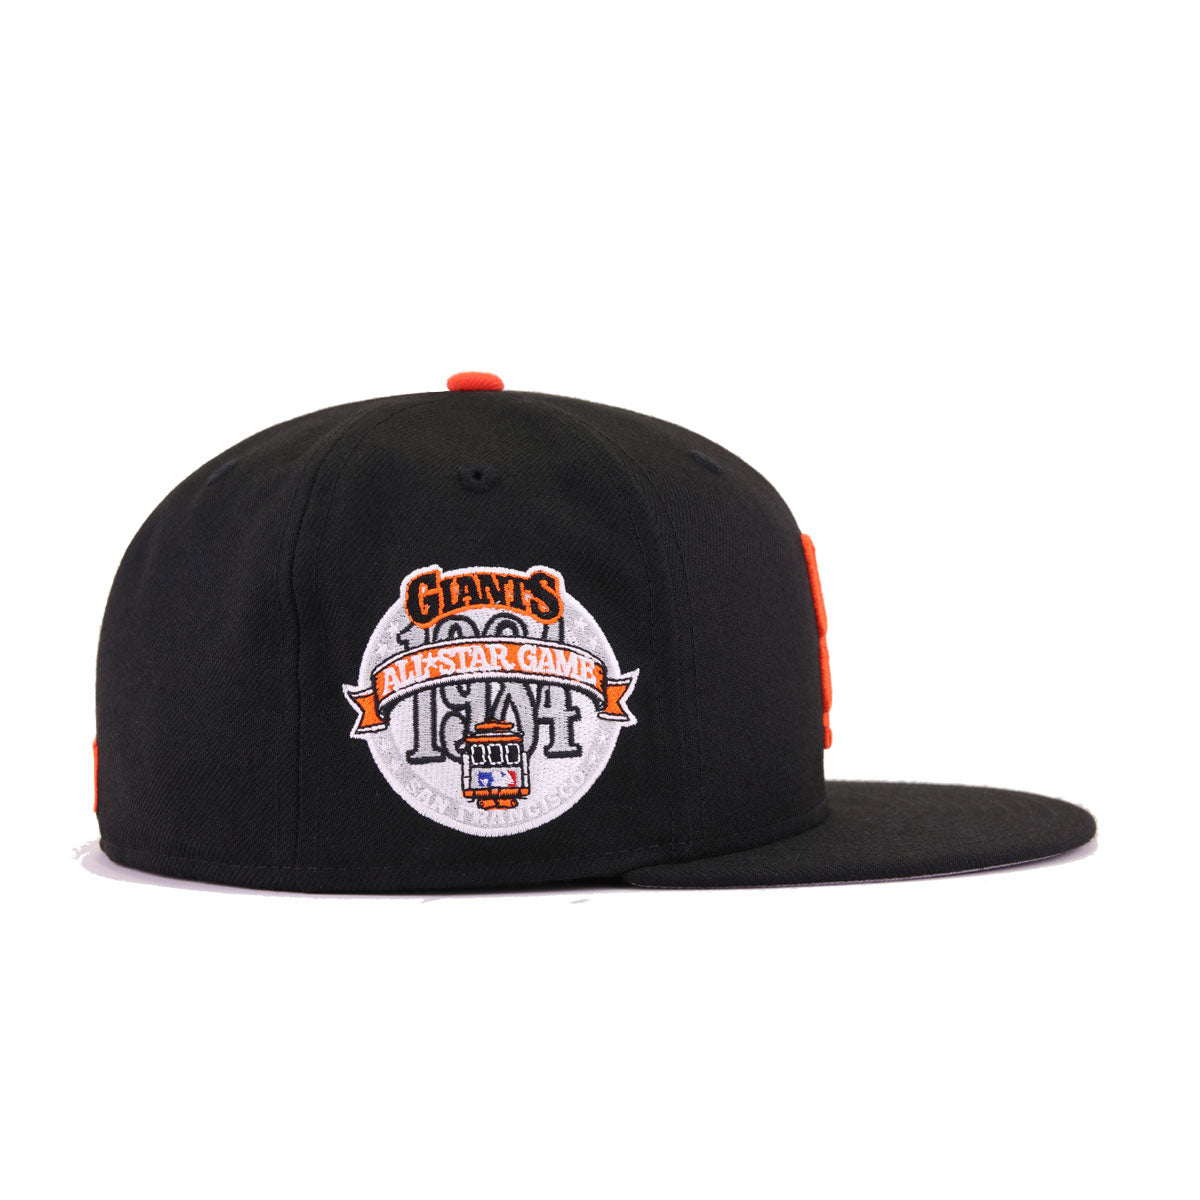 San Francisco Giants Black Grilled Orange 1984 All Star Game New Era 59Fifty Fitted